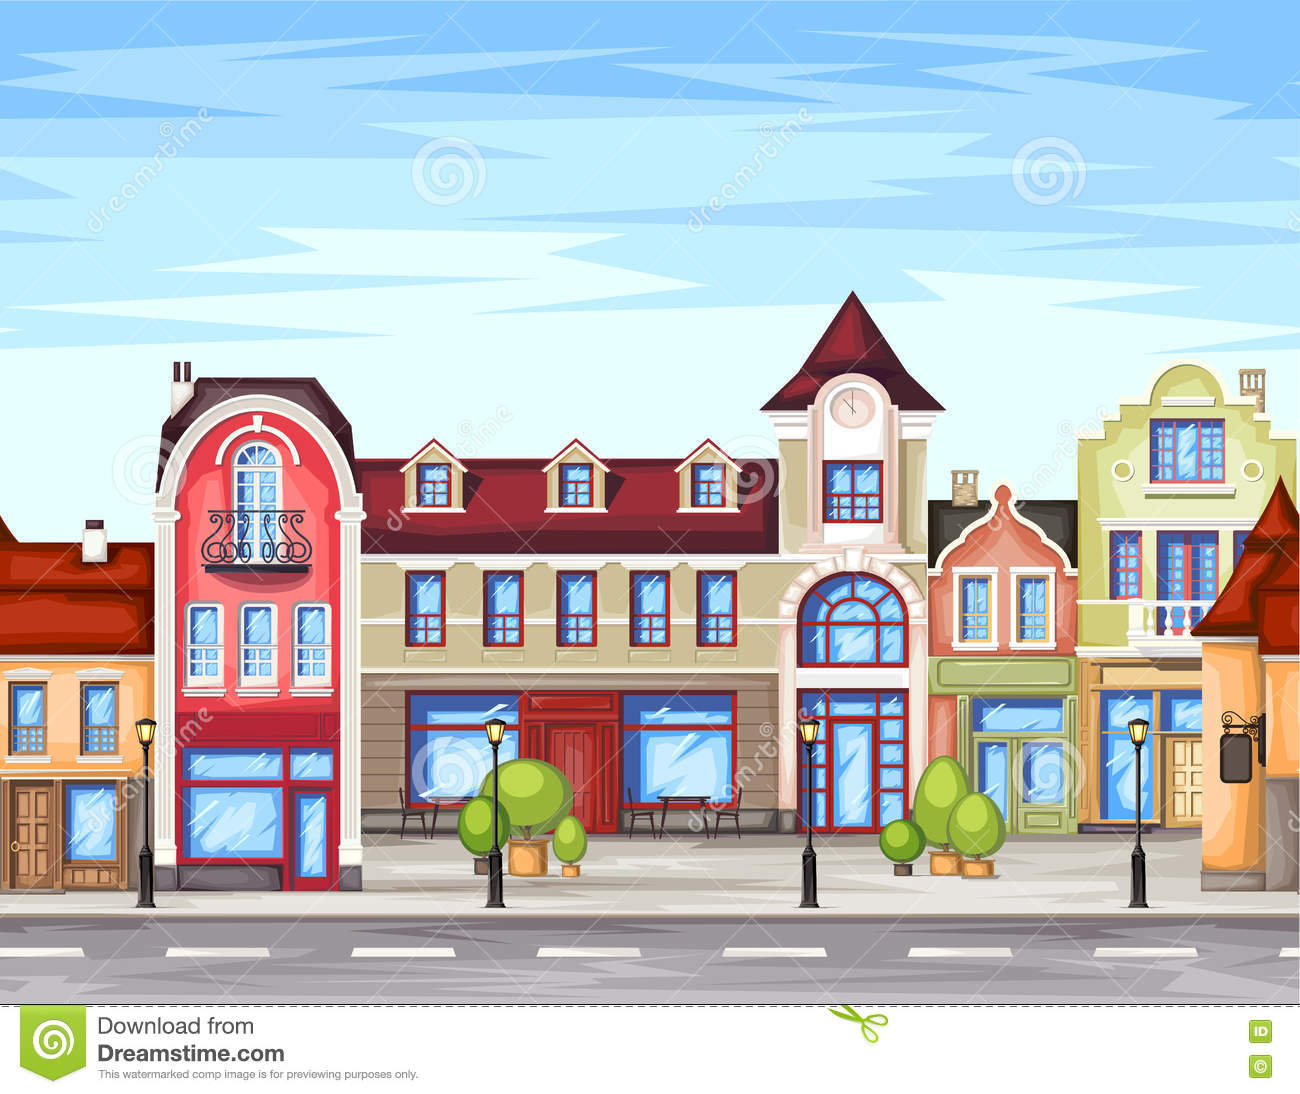 Town Landscape Vector Illustration: Small Town Stock Illustrations